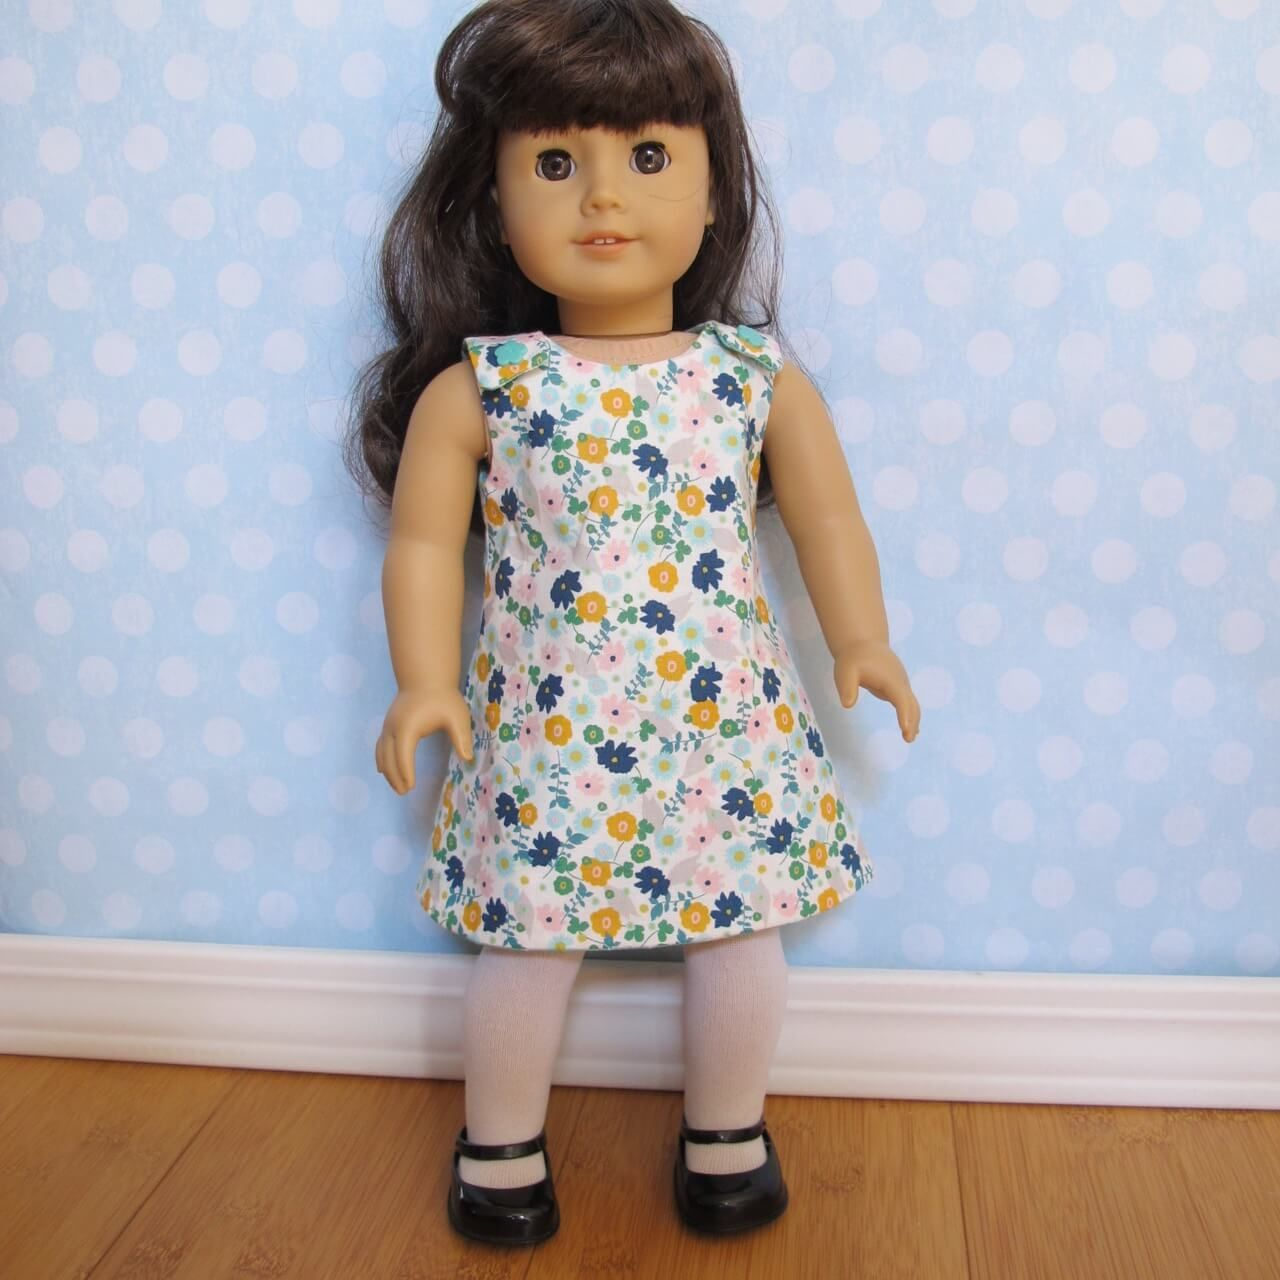 Reversible A Line Dress pattern for 18 inch doll Fits American Girl